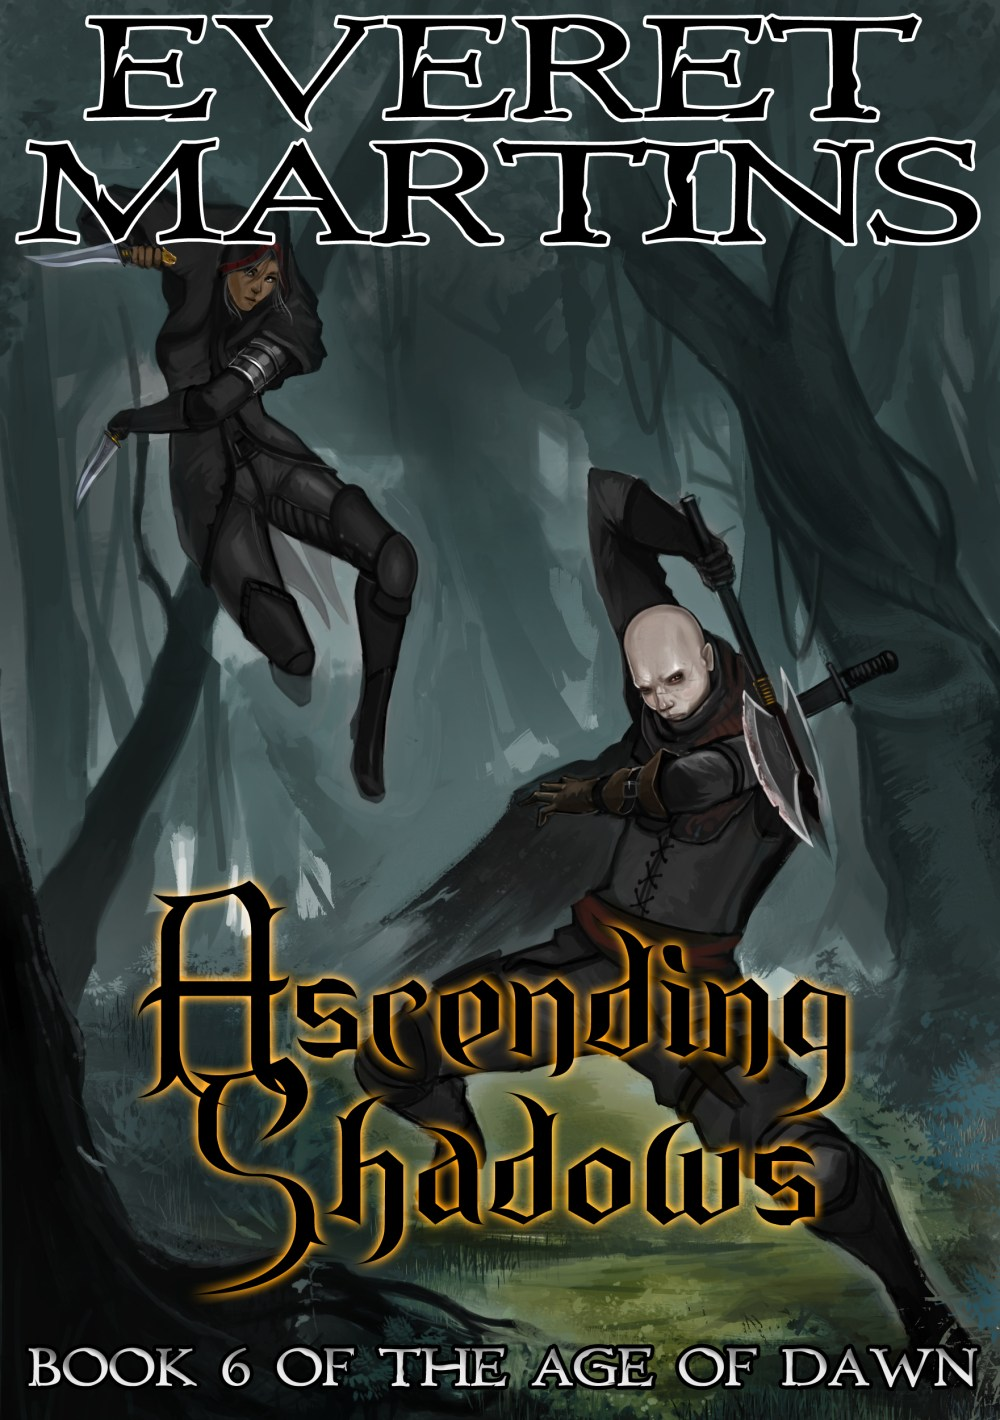 Ascending Shadows - Book 6 of The Age of Dawn